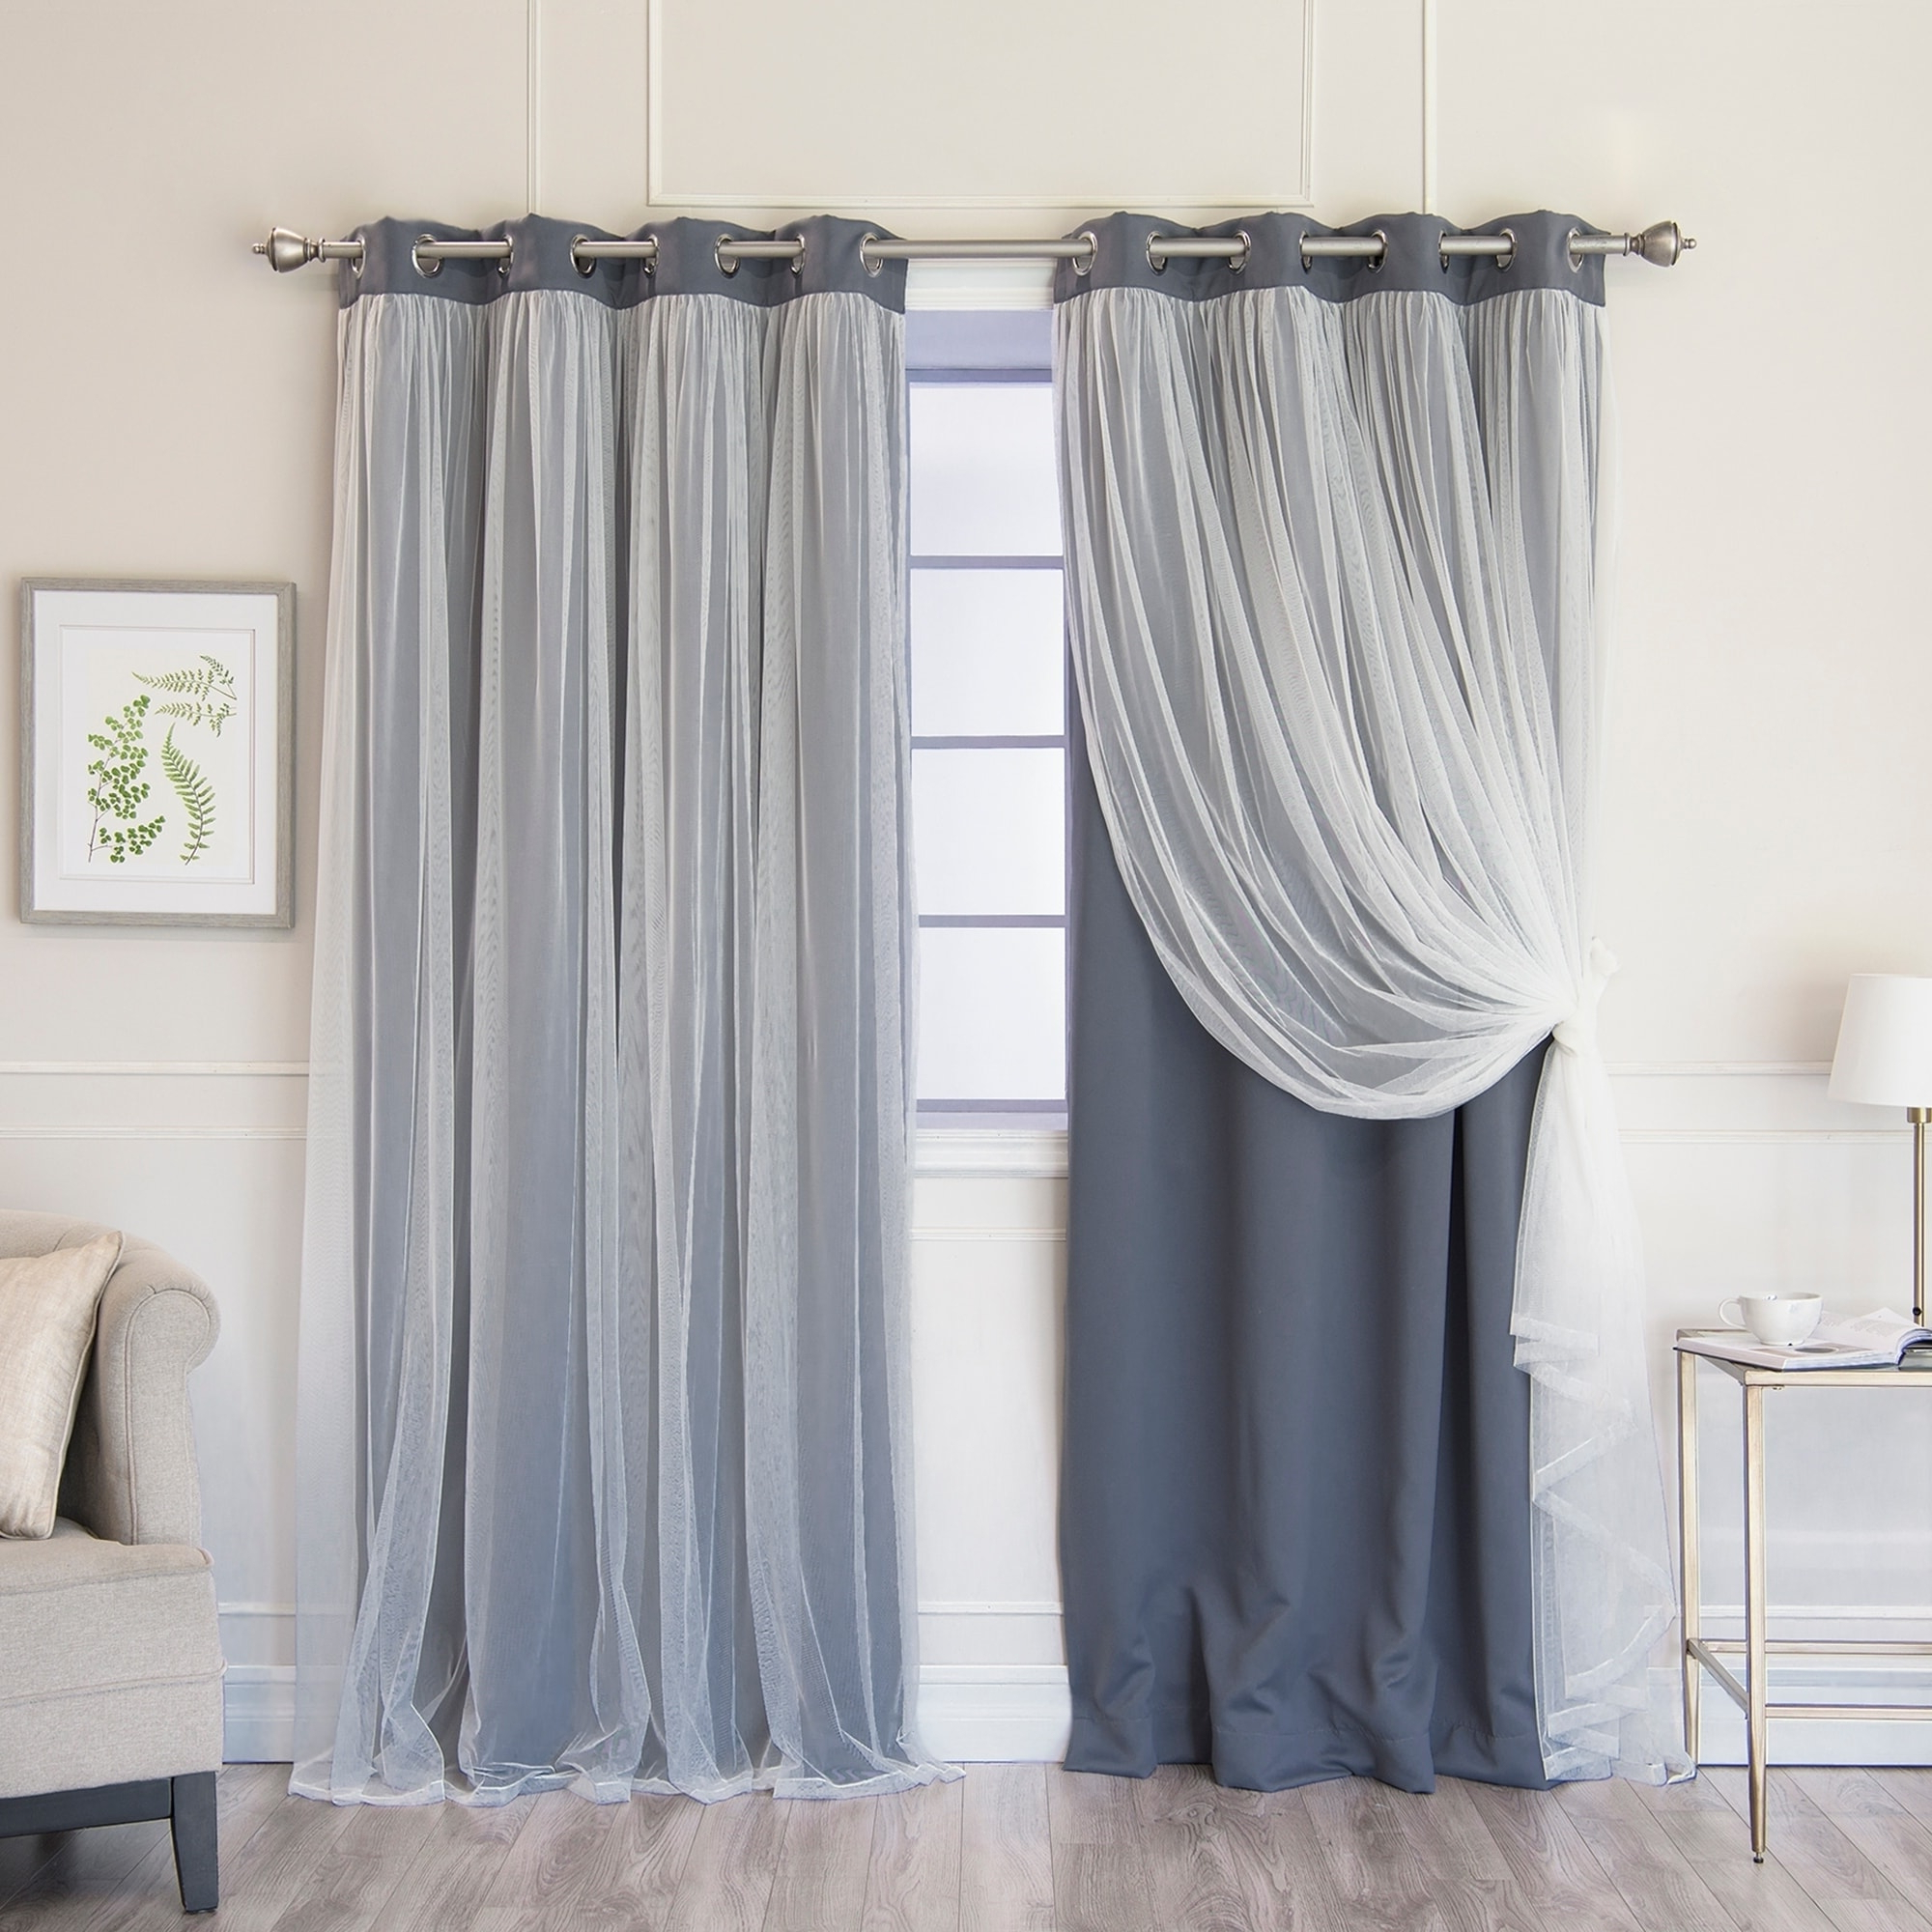 2021 Aurora Home Gathered Tulle Overlay Blackout Curtain Panel Pair In Star Punch Tulle Overlay Blackout Curtain Panel Pairs (View 13 of 20)